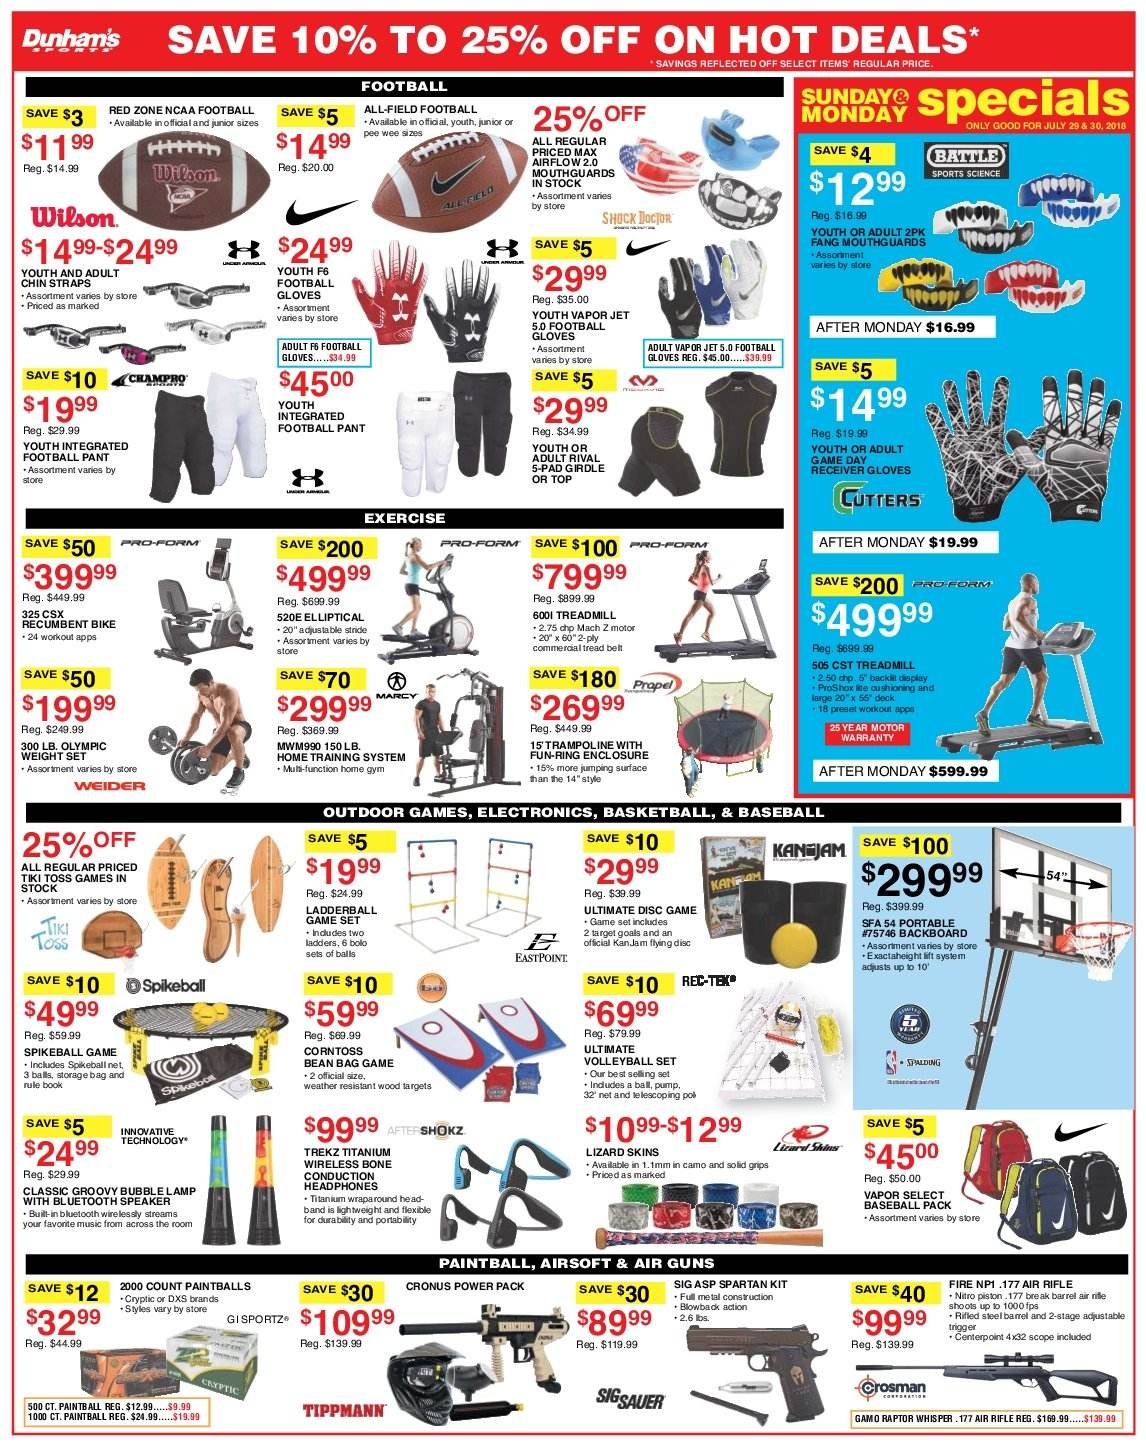 Dunham's Sports Flyer - 07.28.2018 - 08.02.2018 - Sales products - bag, band, basket, bike, bluetooth, football gloves, gloves, lamp, rifle, ring, solid, speaker, trampoline, head, jam. Page 3.